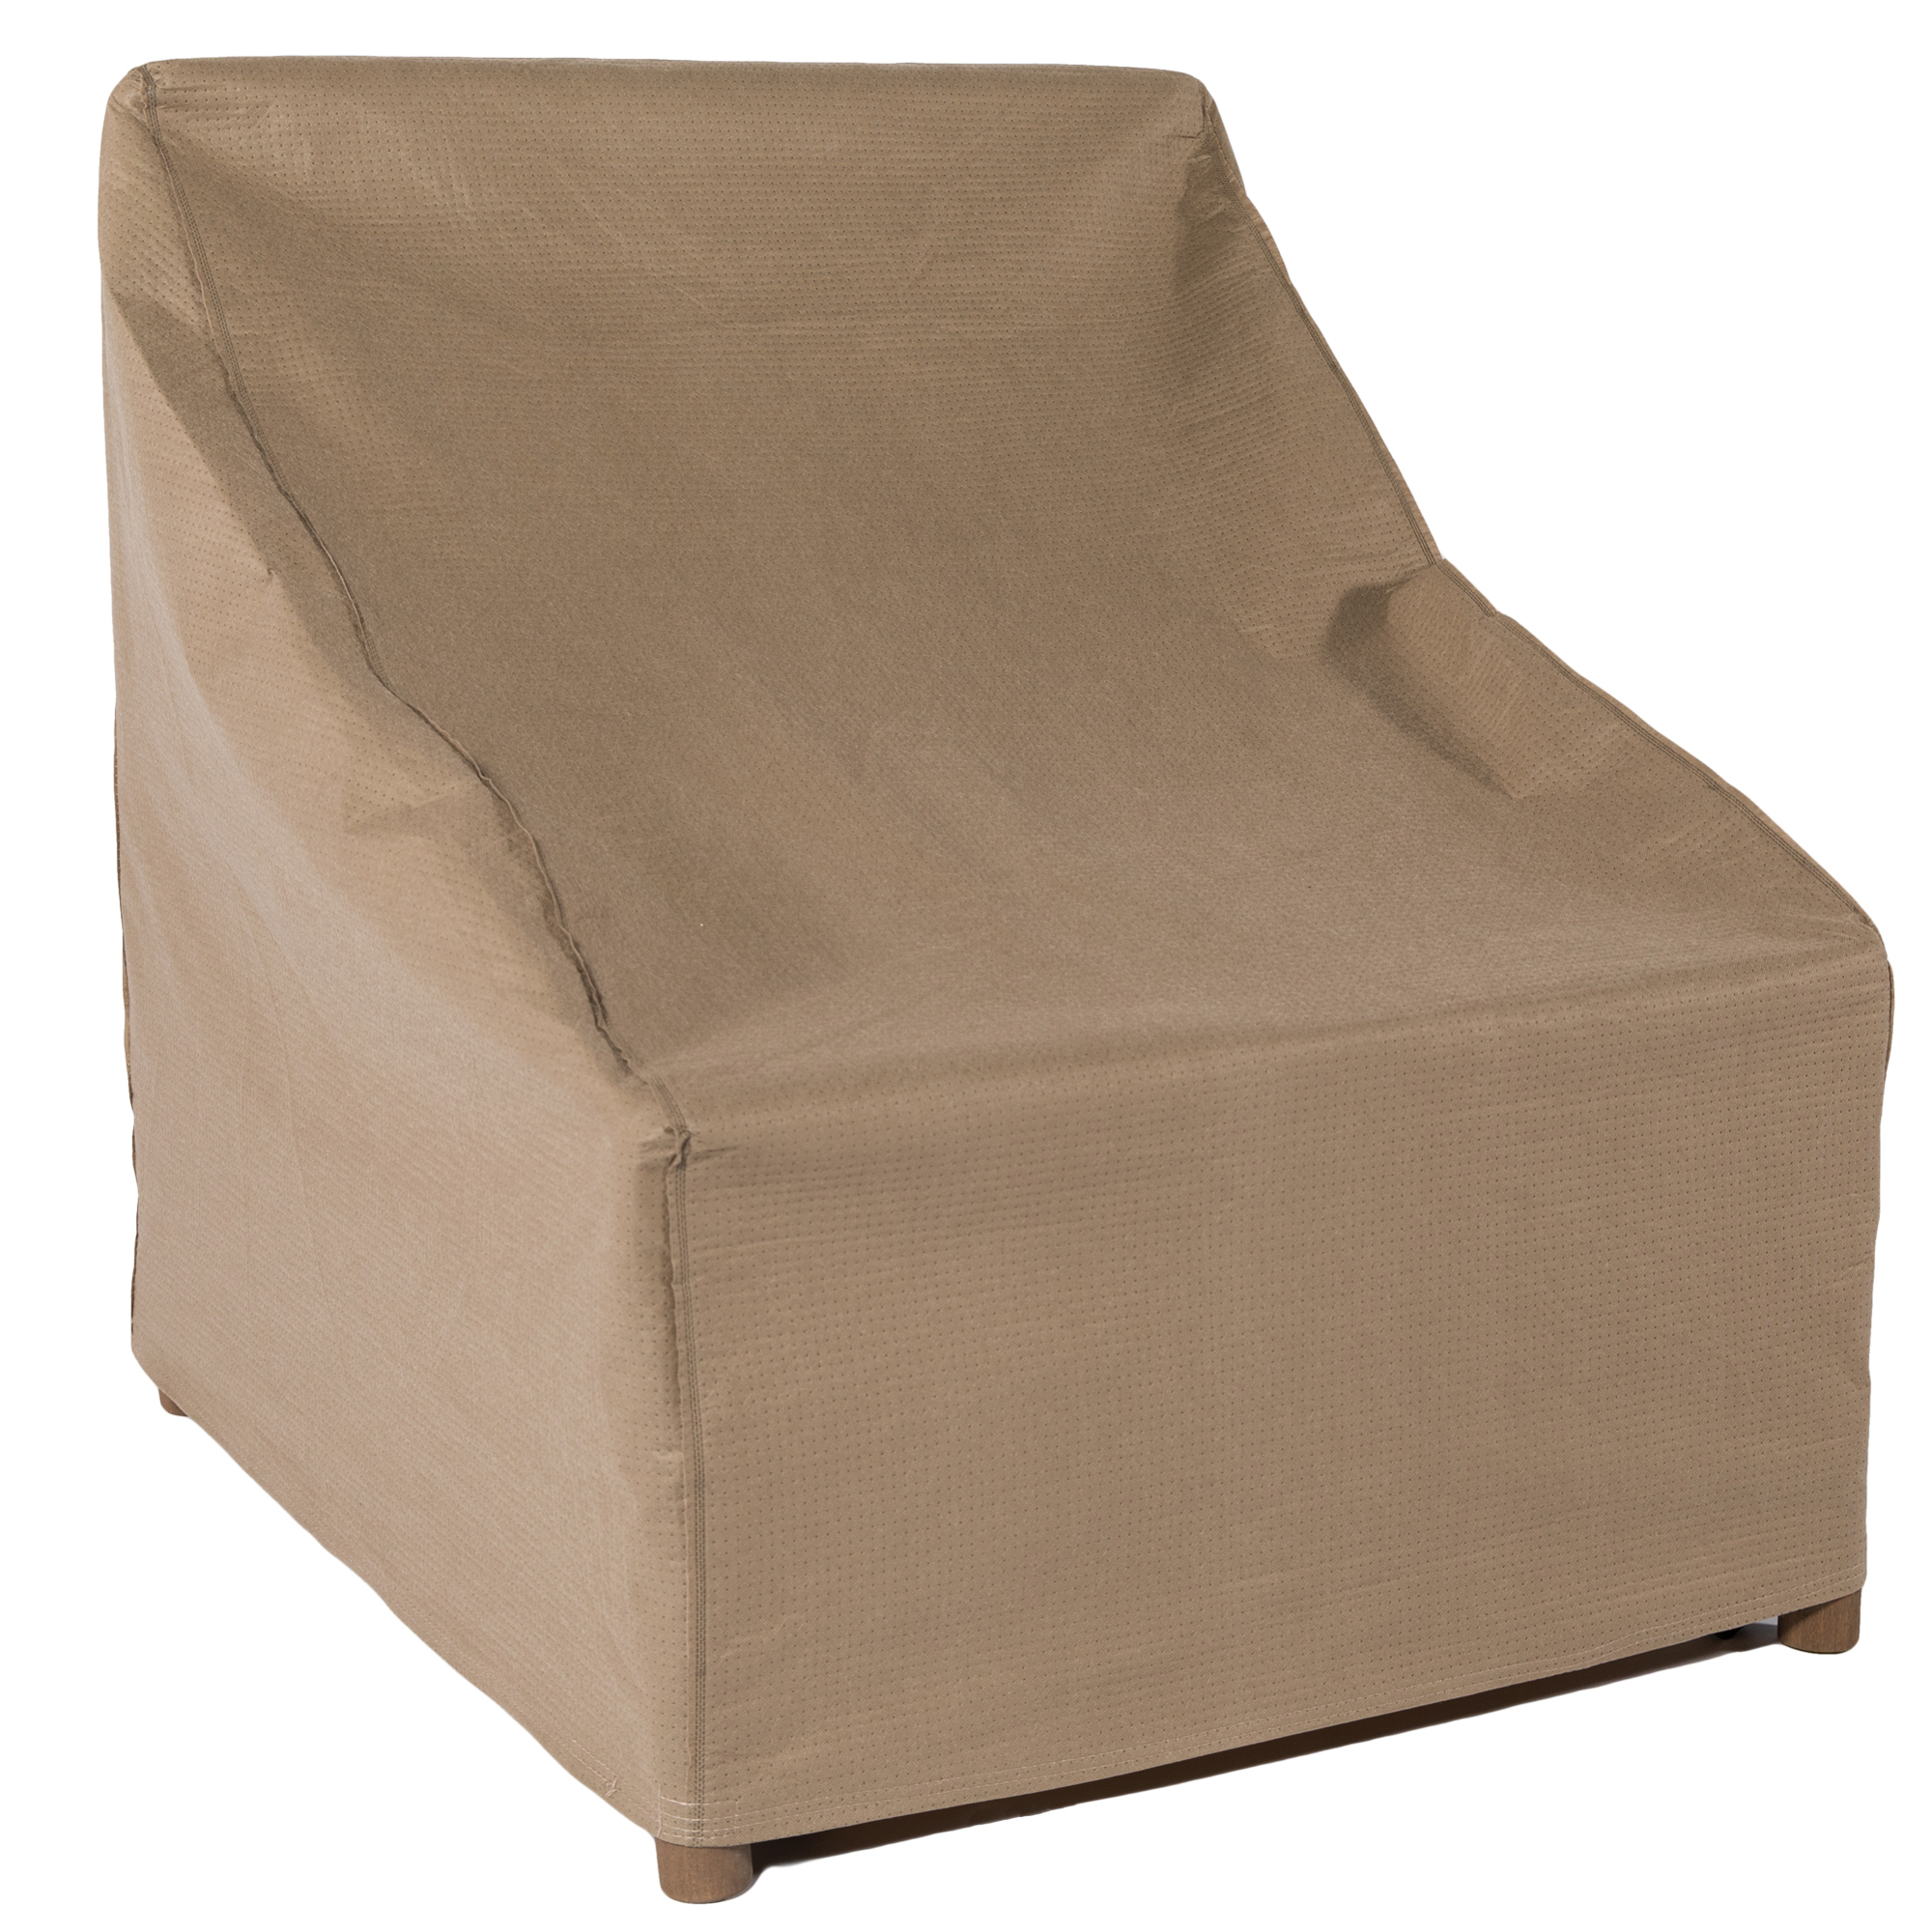 Duck Covers Essential 29 in. W Patio Chair Cover